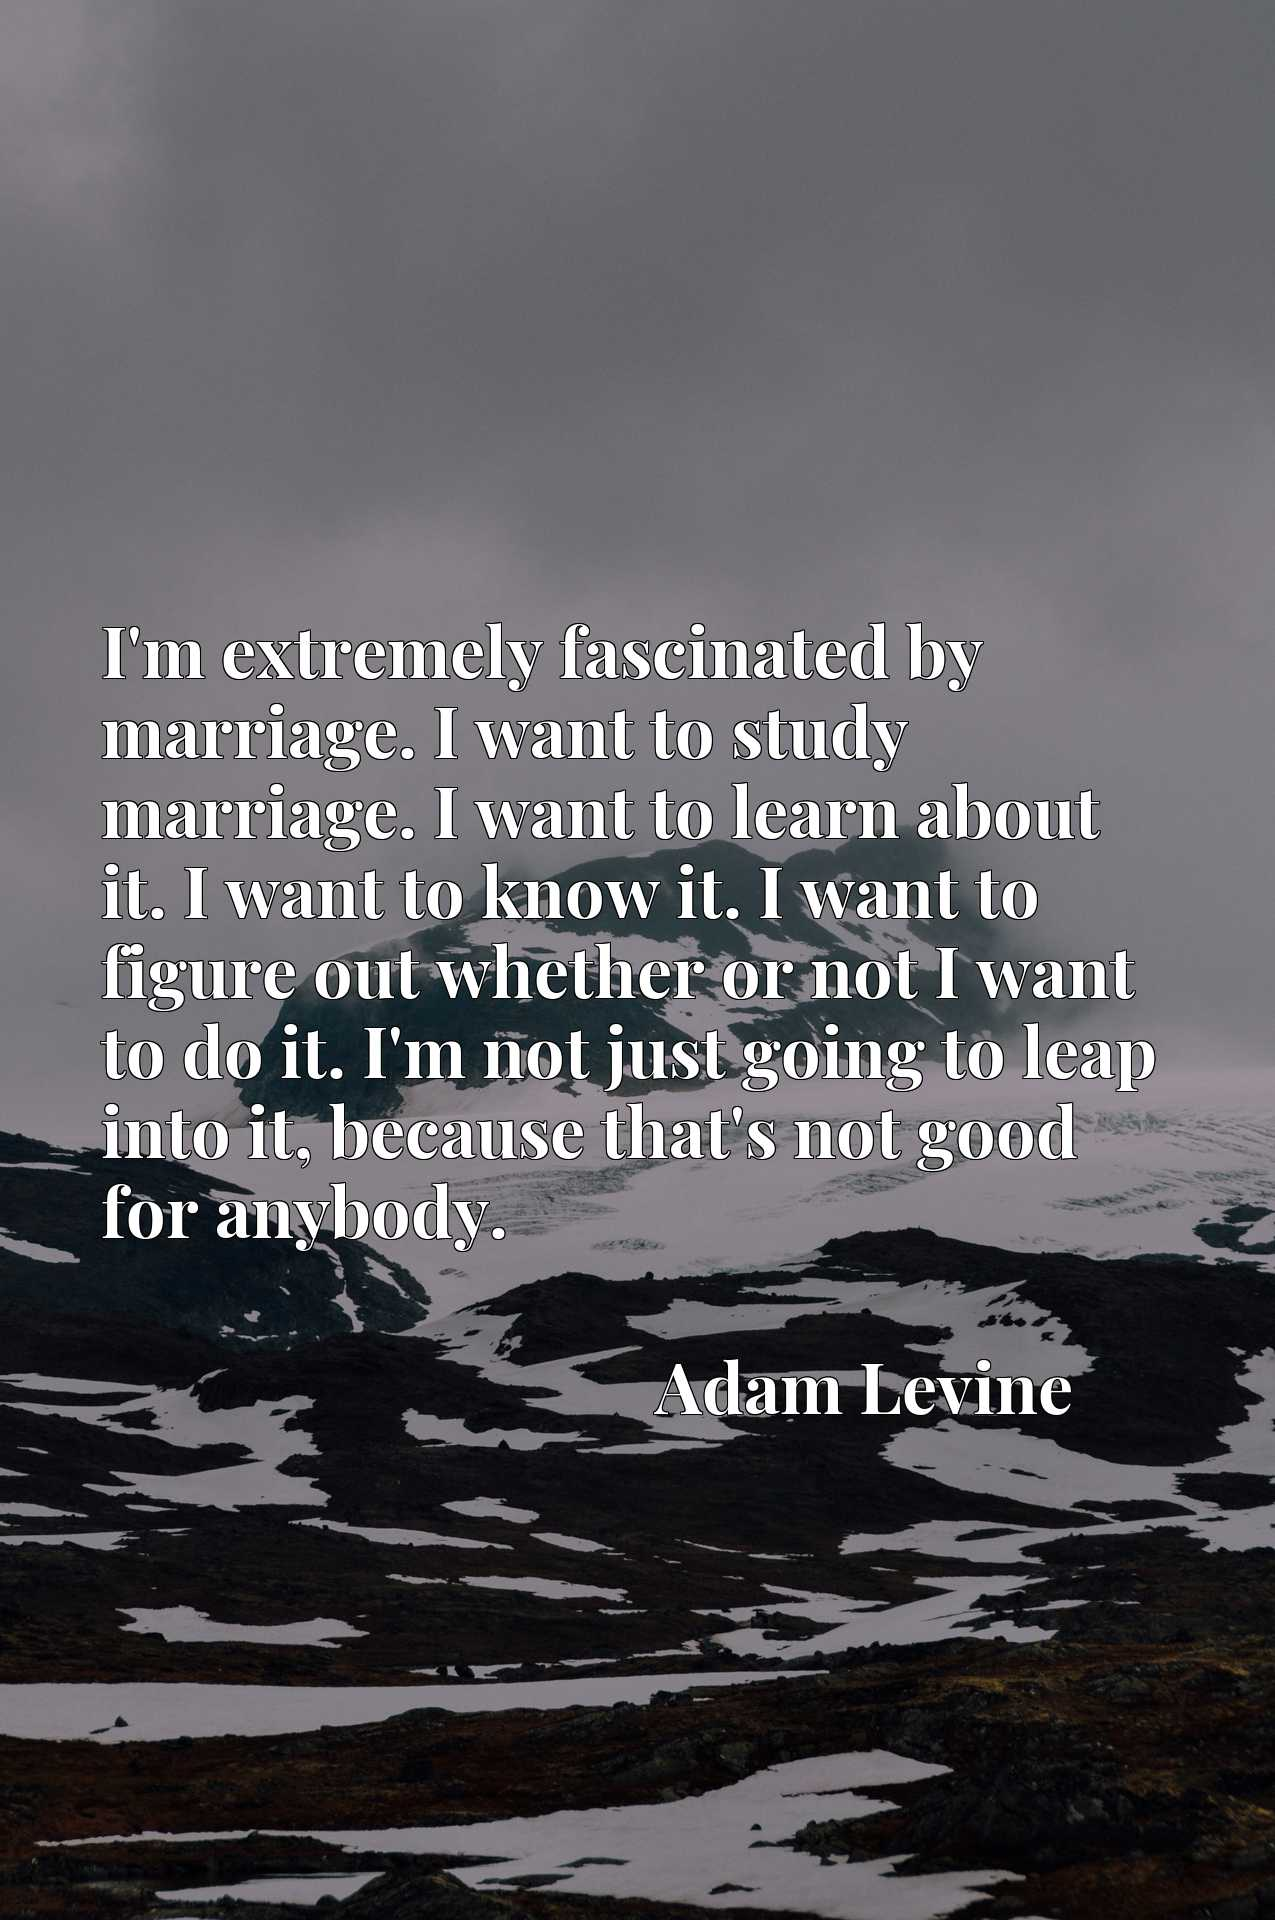 I'm extremely fascinated by marriage. I want to study marriage. I want to learn about it. I want to know it. I want to figure out whether or not I want to do it. I'm not just going to leap into it, because that's not good for anybody.